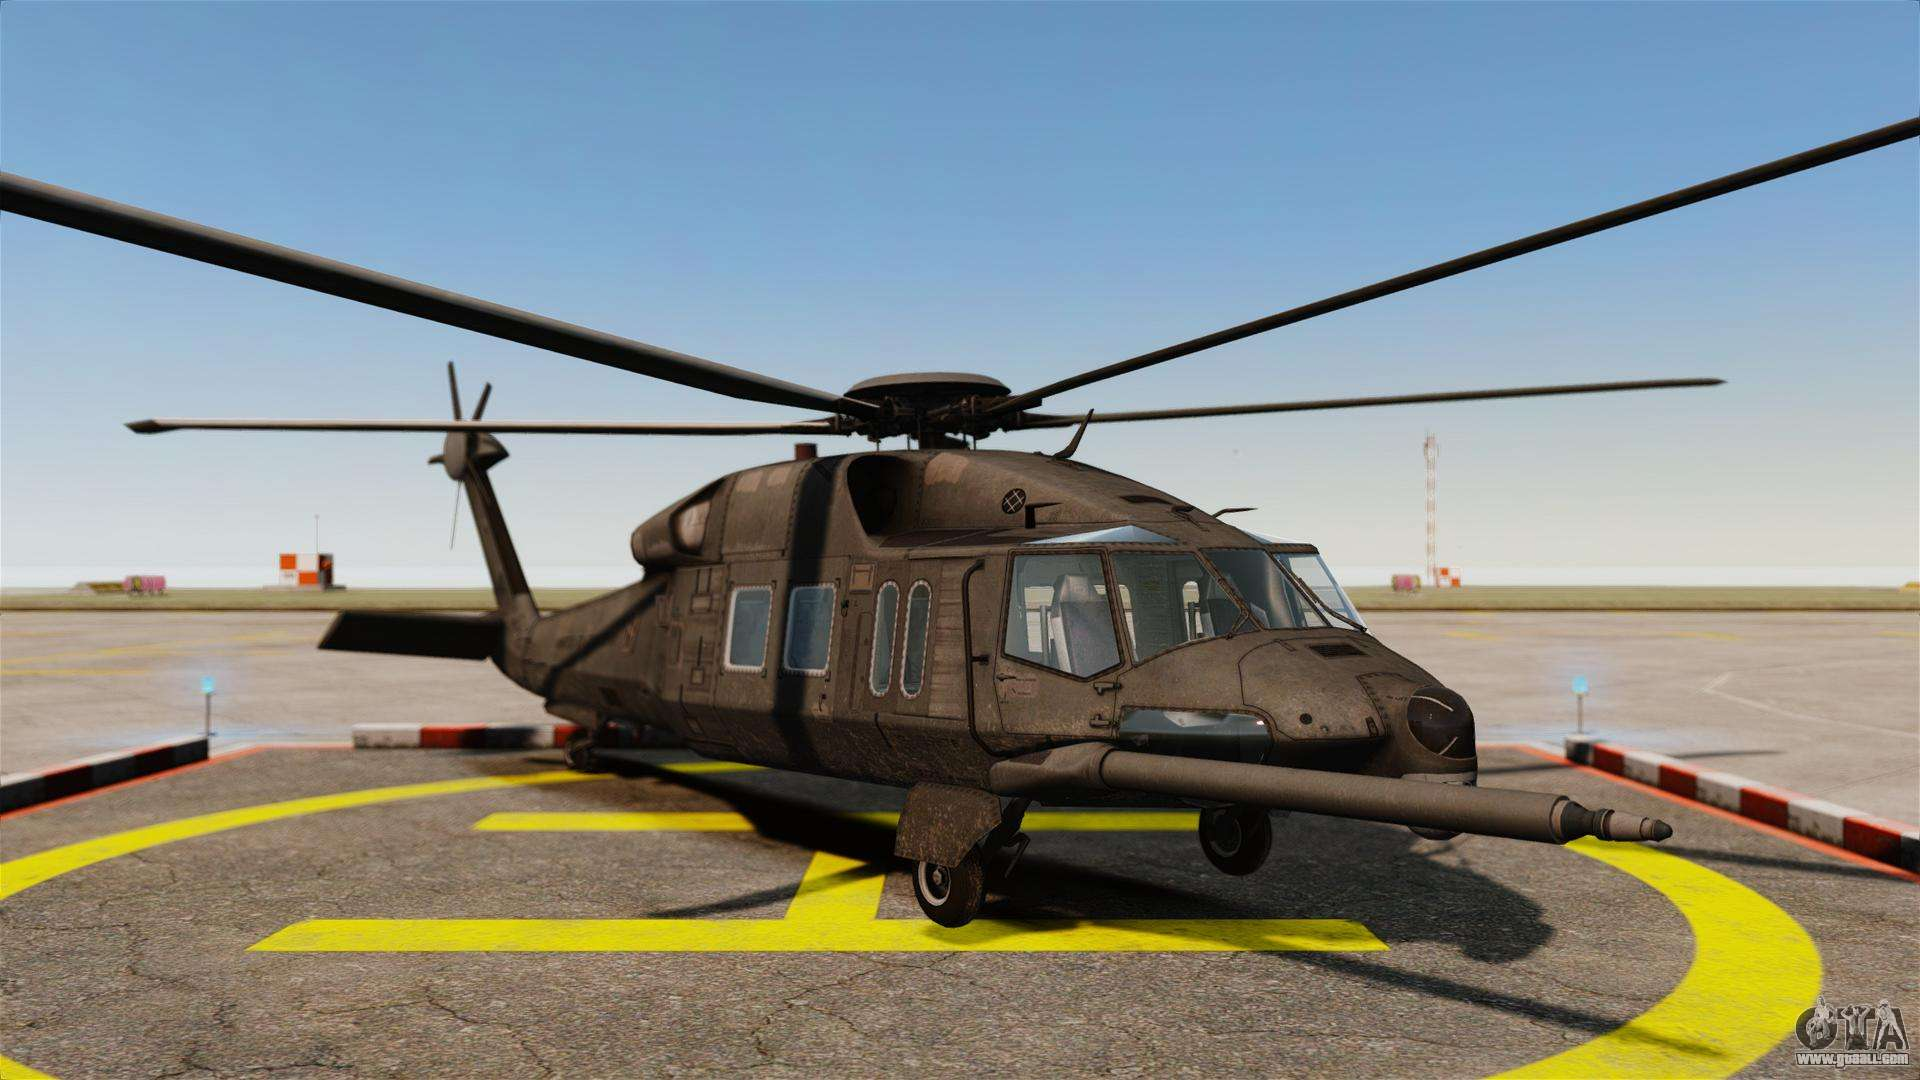 maverick helicopters crash with 36441 Sikorsky Mh X Silent Hawk Epm on Police Helicopter  GTA III also 61761849 as well 36441 Sikorsky Mh X Silent Hawk Epm as well Ecx01001t2 in addition UbLhkpjflV4.